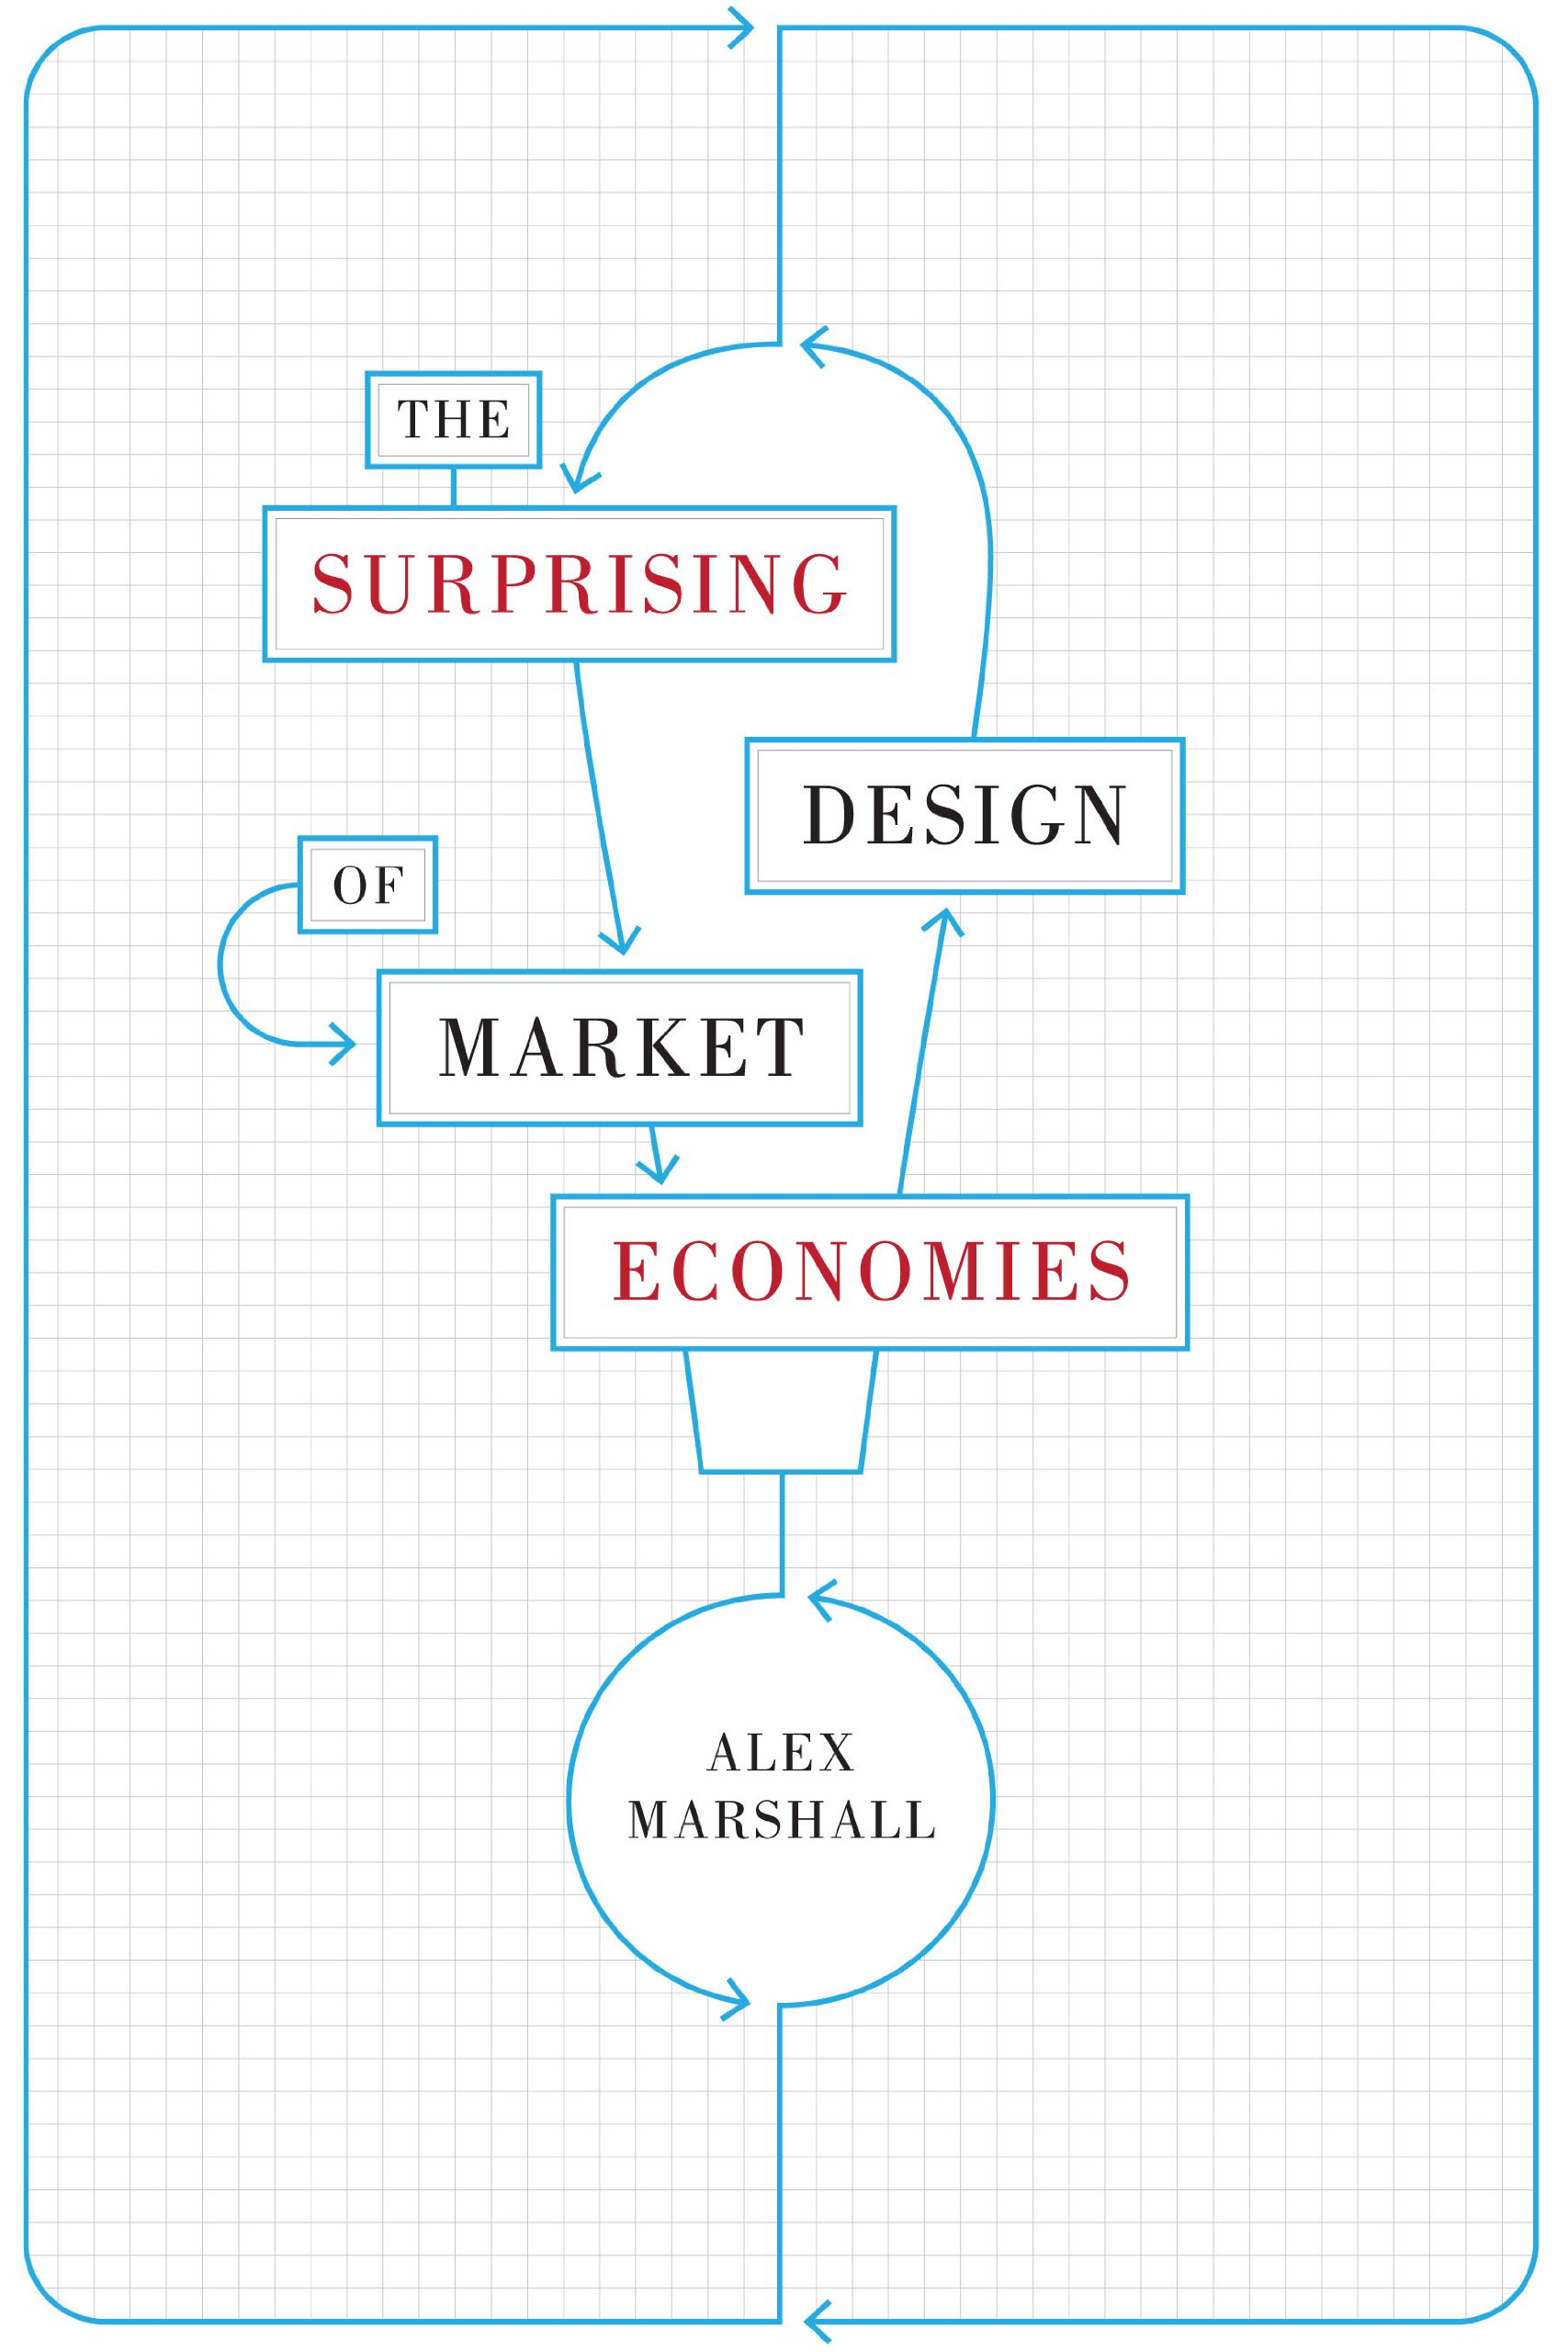 The Surprising Design of Market Economies (Constructs)